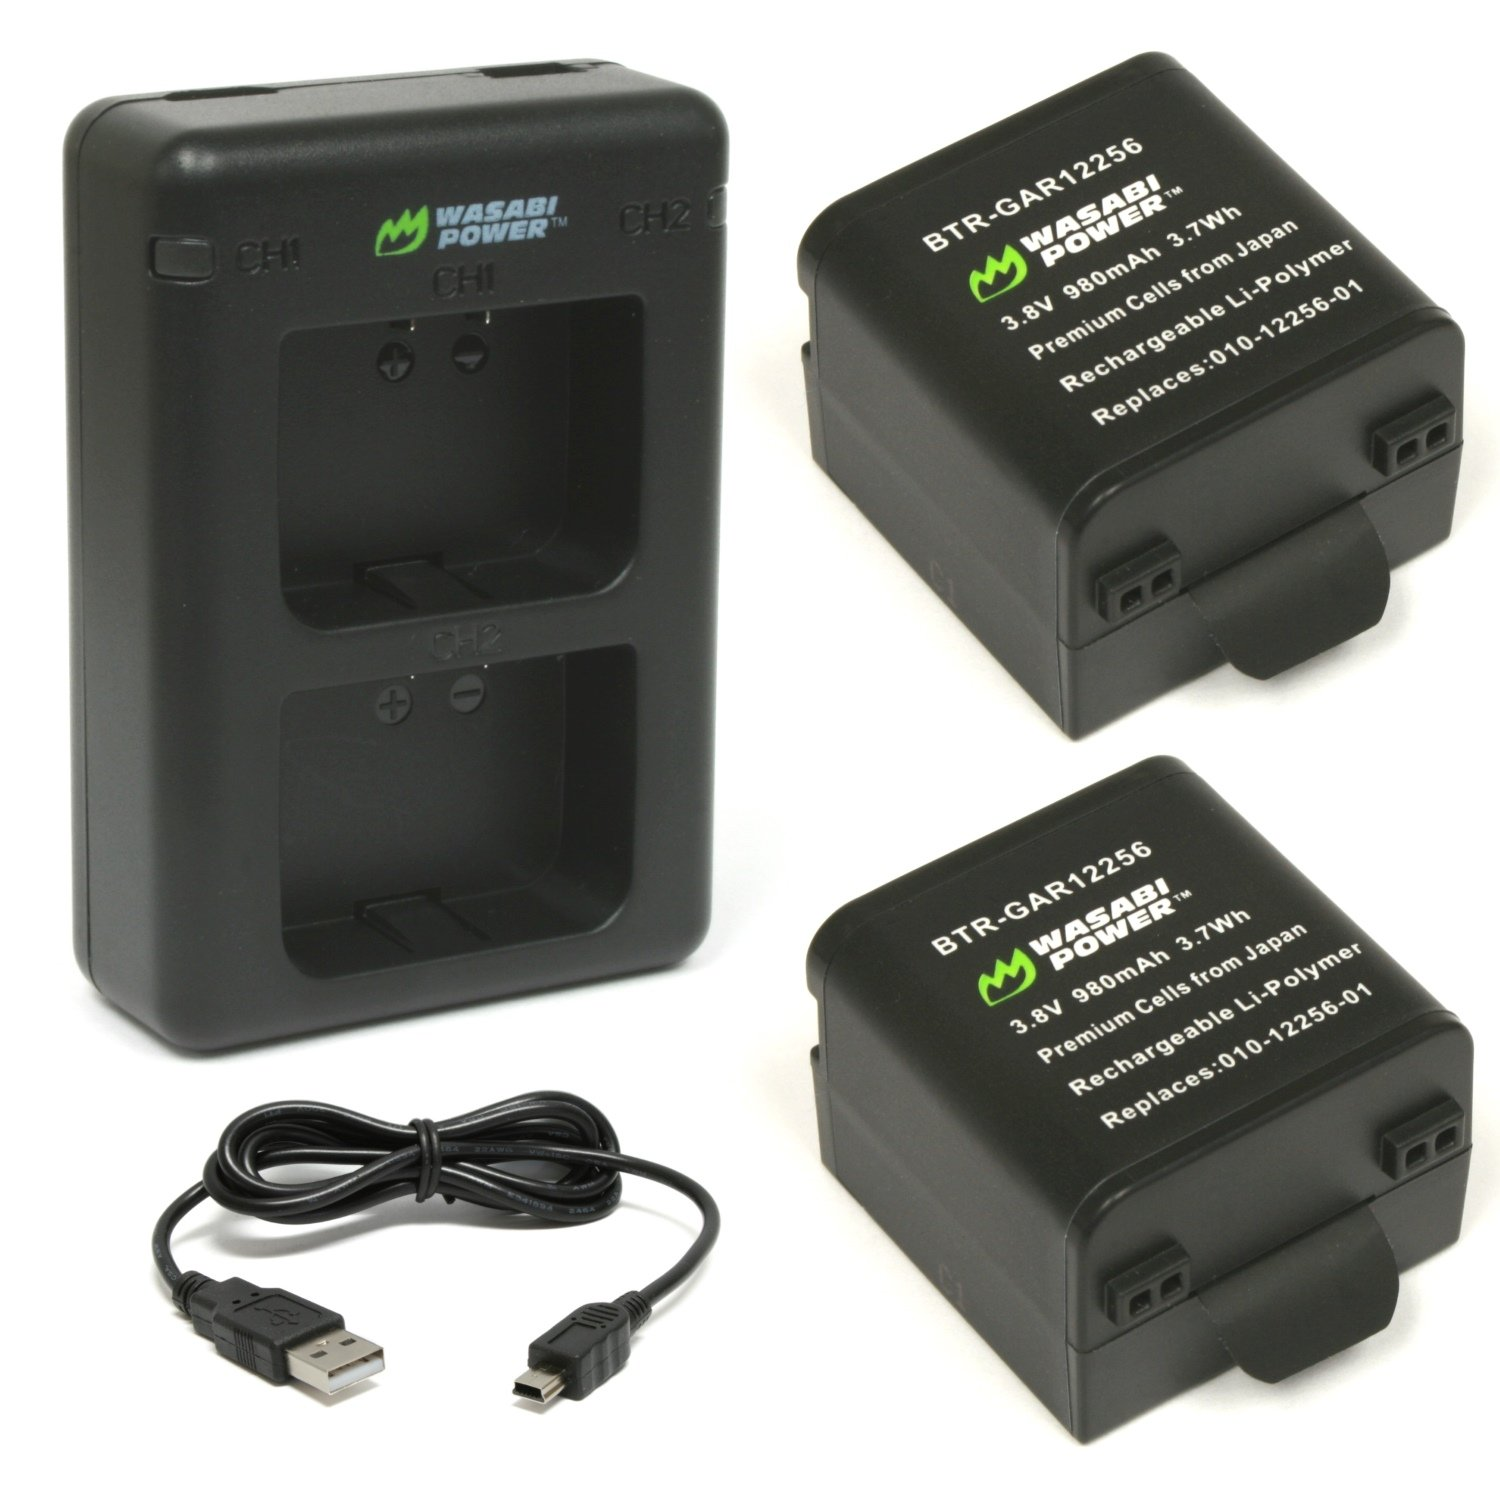 Wasabi Power Battery (2-Pack) and Dual Charger for Garmin 010-12256-01 and Garmin VIRB X, VIRB XE